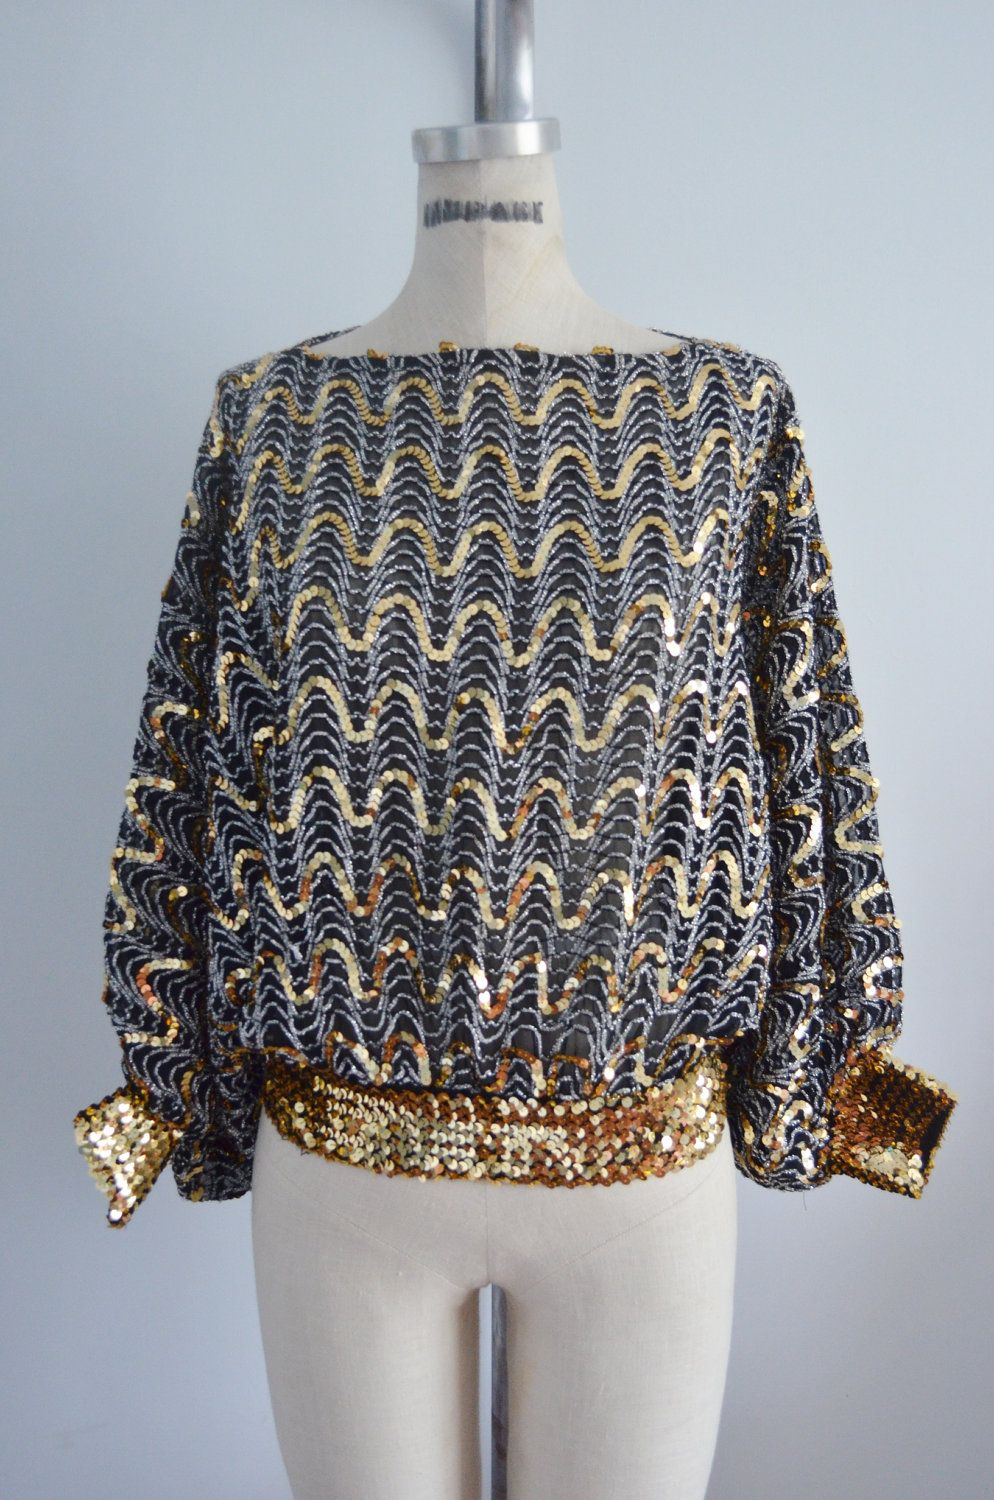 170b10101f Vintage 70s GLAM Sequins BATWING DISCO Top Blouse Metallic Black   Gold.